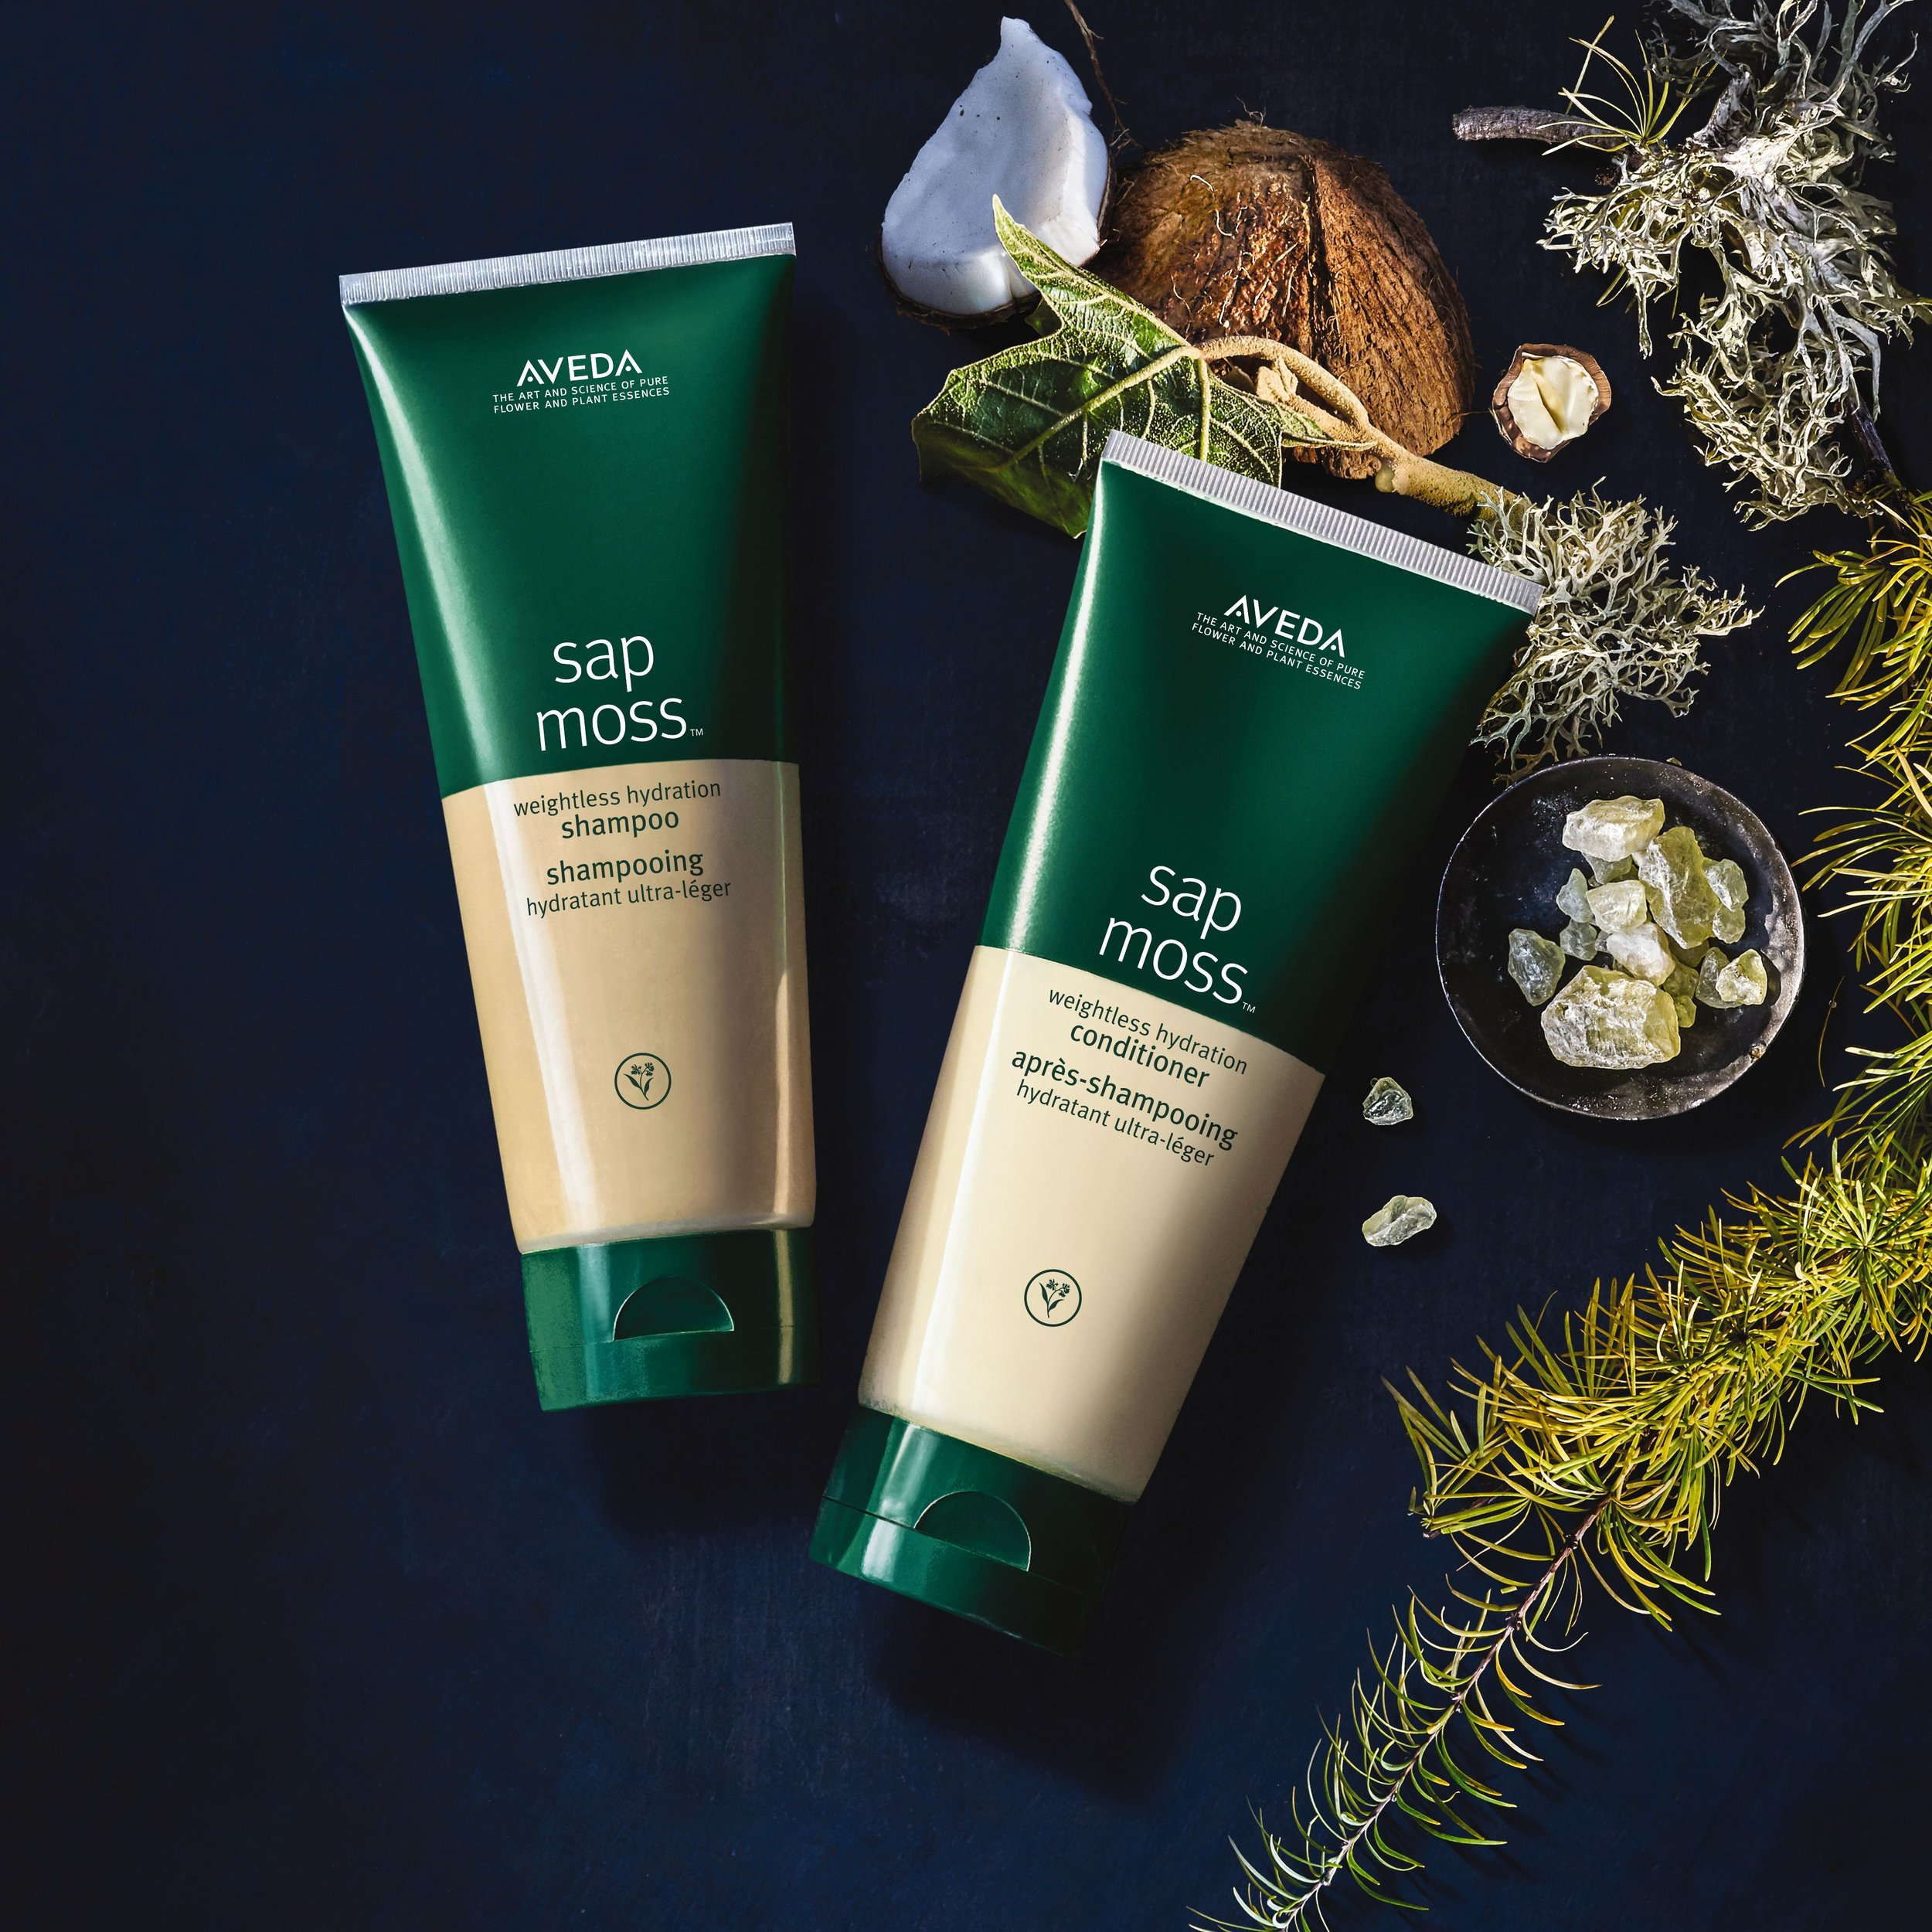 SAP MOSS SHAMPOO & CONDITIONER    -  Weightlessly hydrates the hair.   -  Tames frizz.   -  Safe for color treated hair.   -  Infuses hair with earthy, 100% naturally derived aroma, featuring jasmine, cyprus, and clary sage oil.